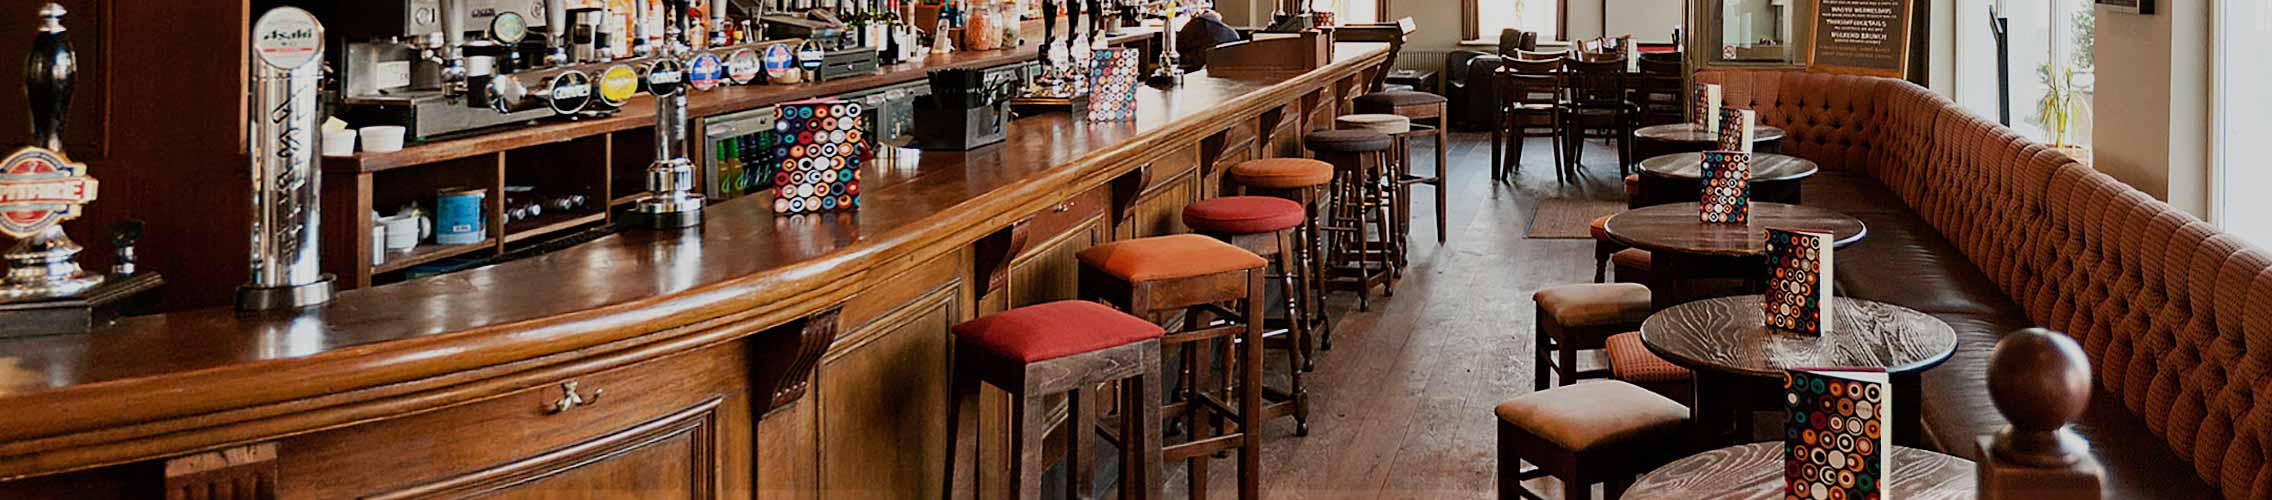 Pub Furniture